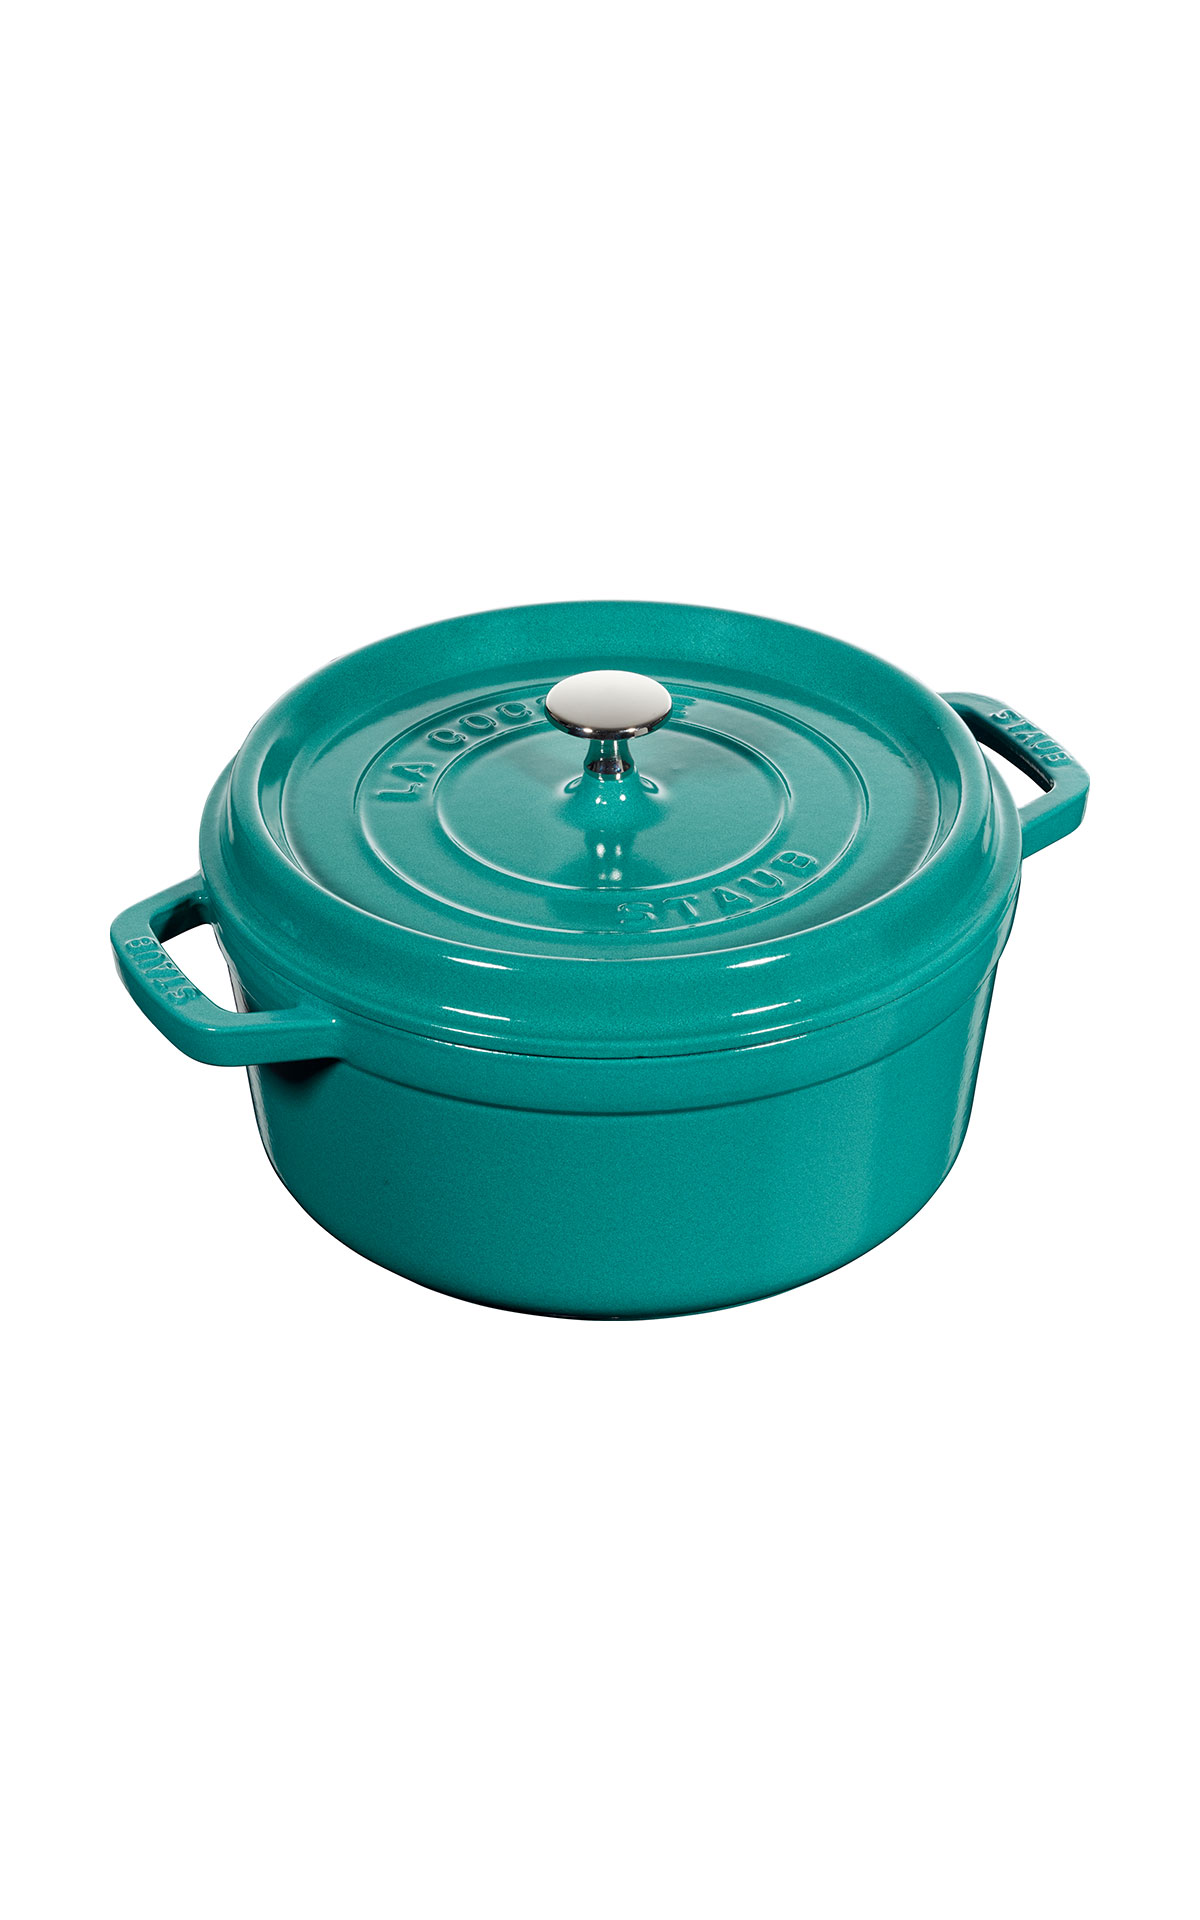 Zwilling Cocotte 24cm mint green from Bicester Village